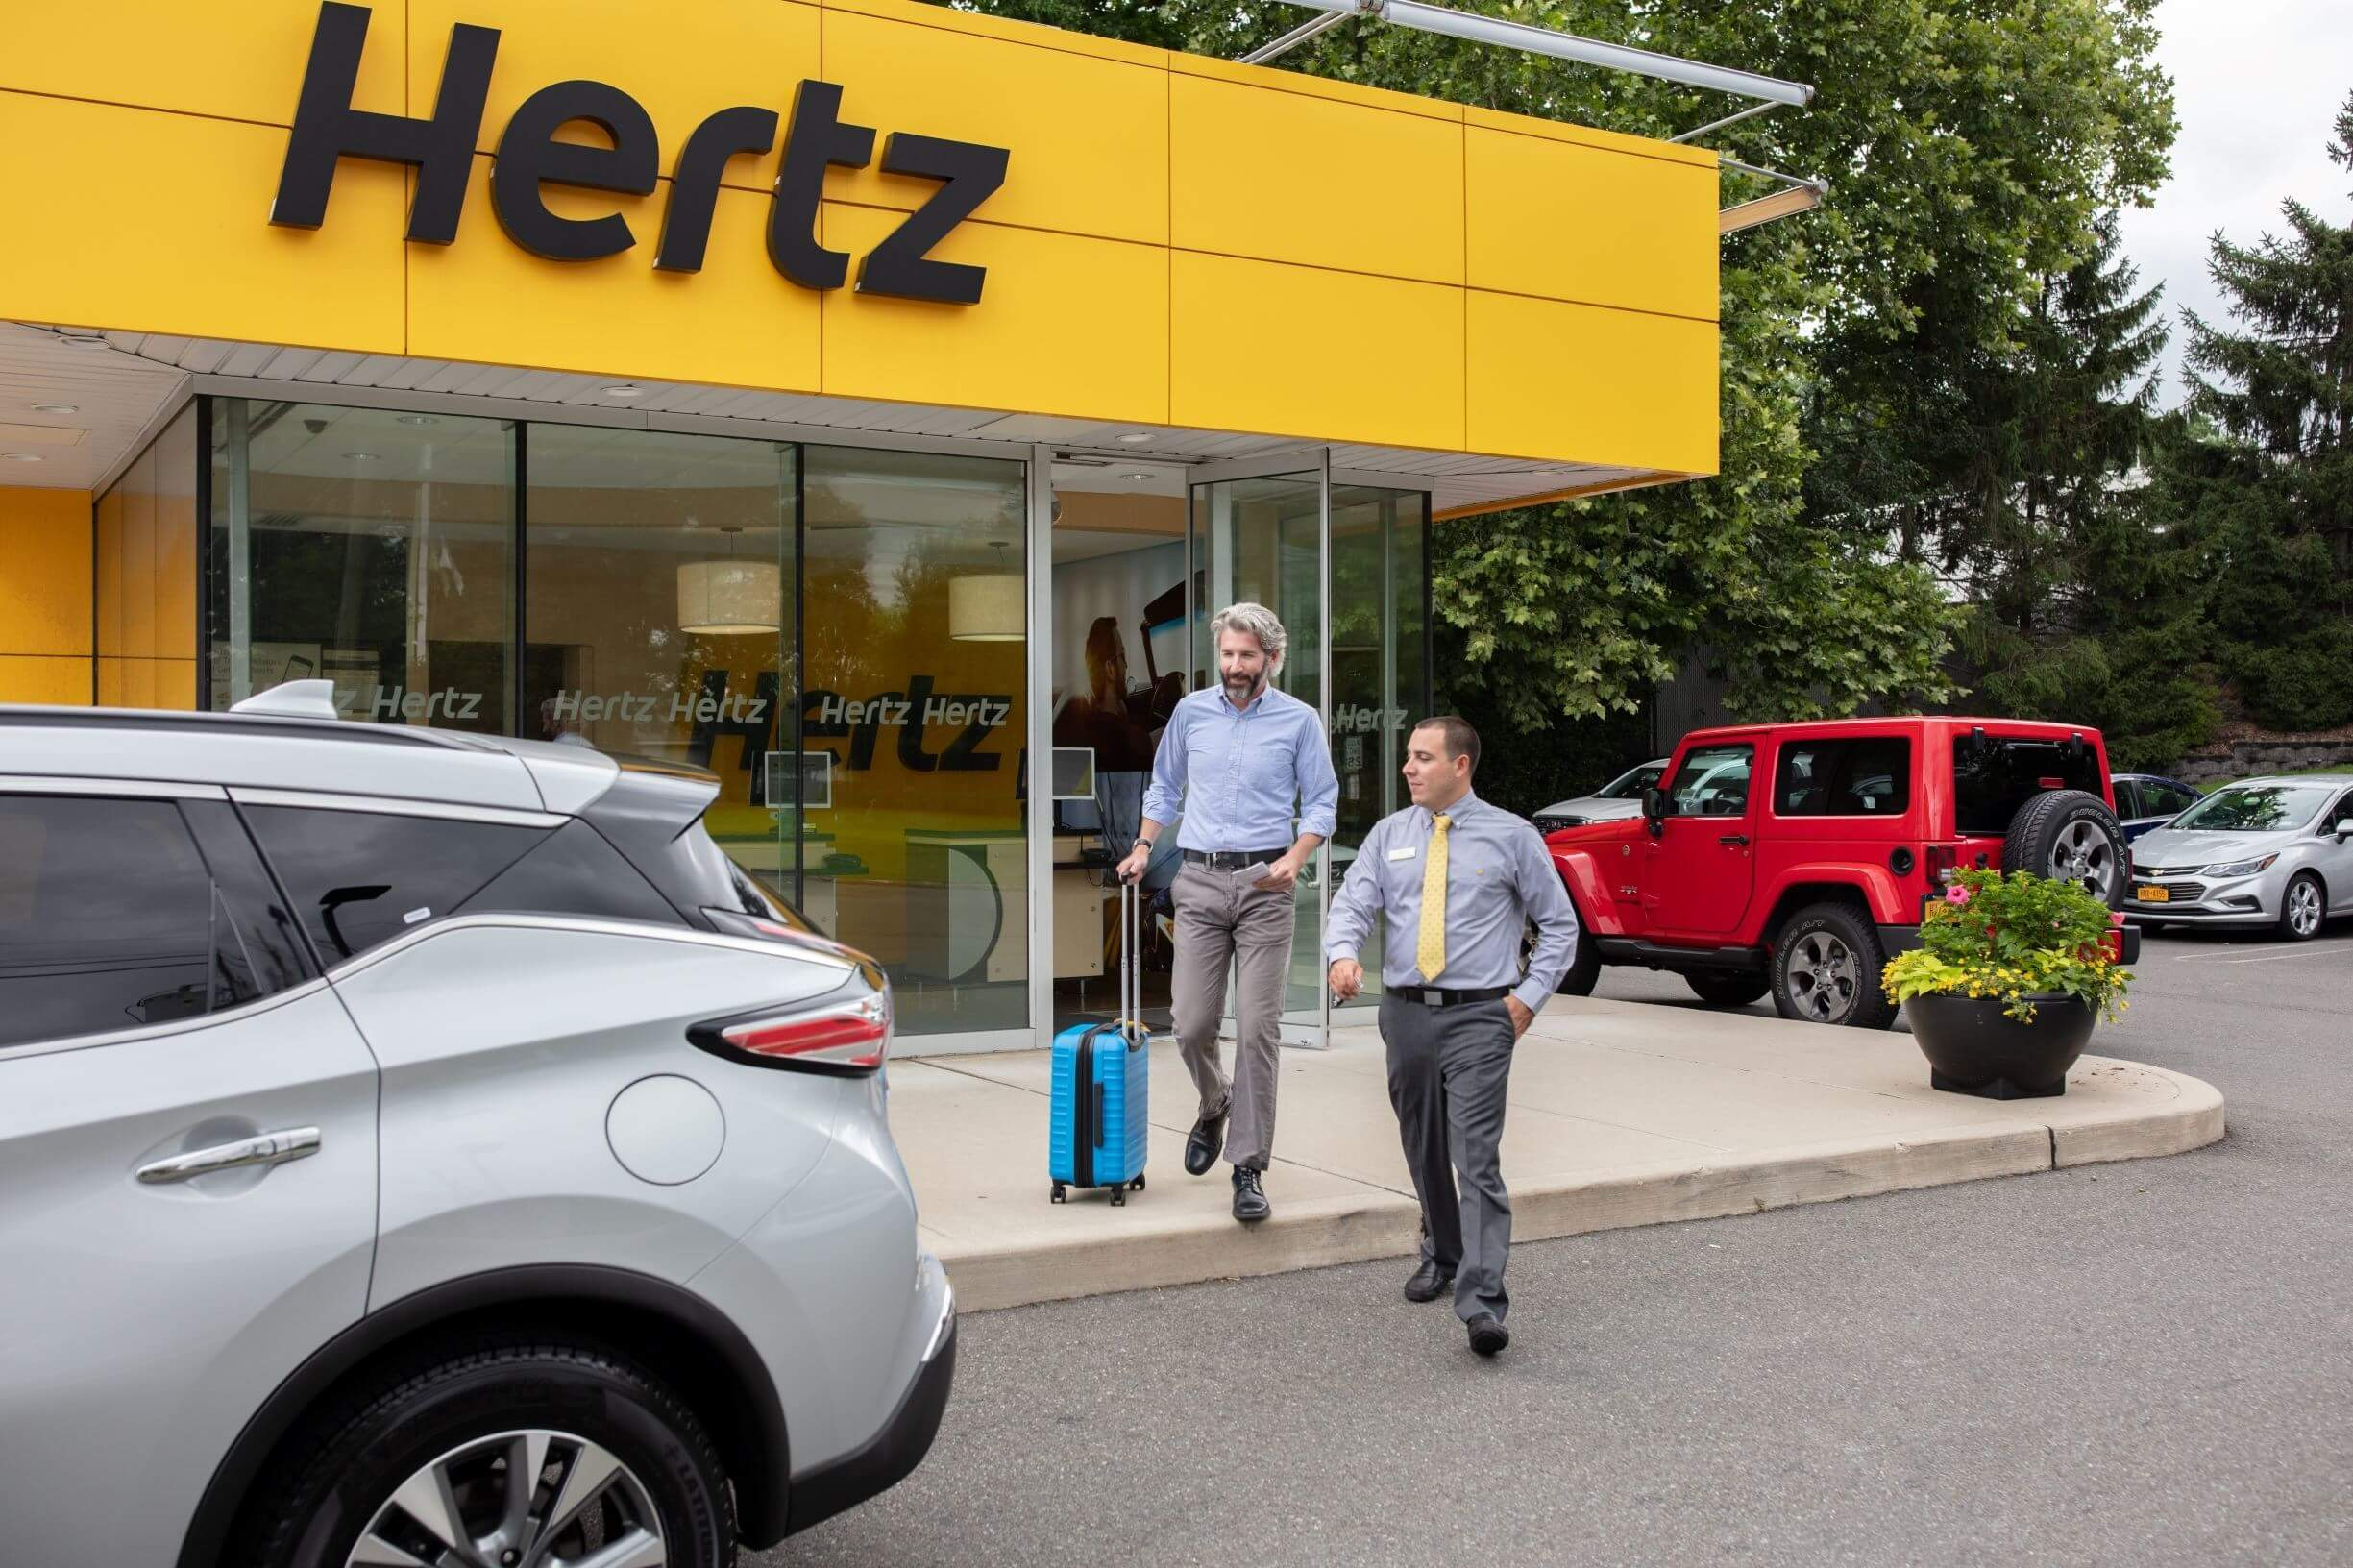 Hertz gets into the vehicle subscription business, pricing starts at $999 per month